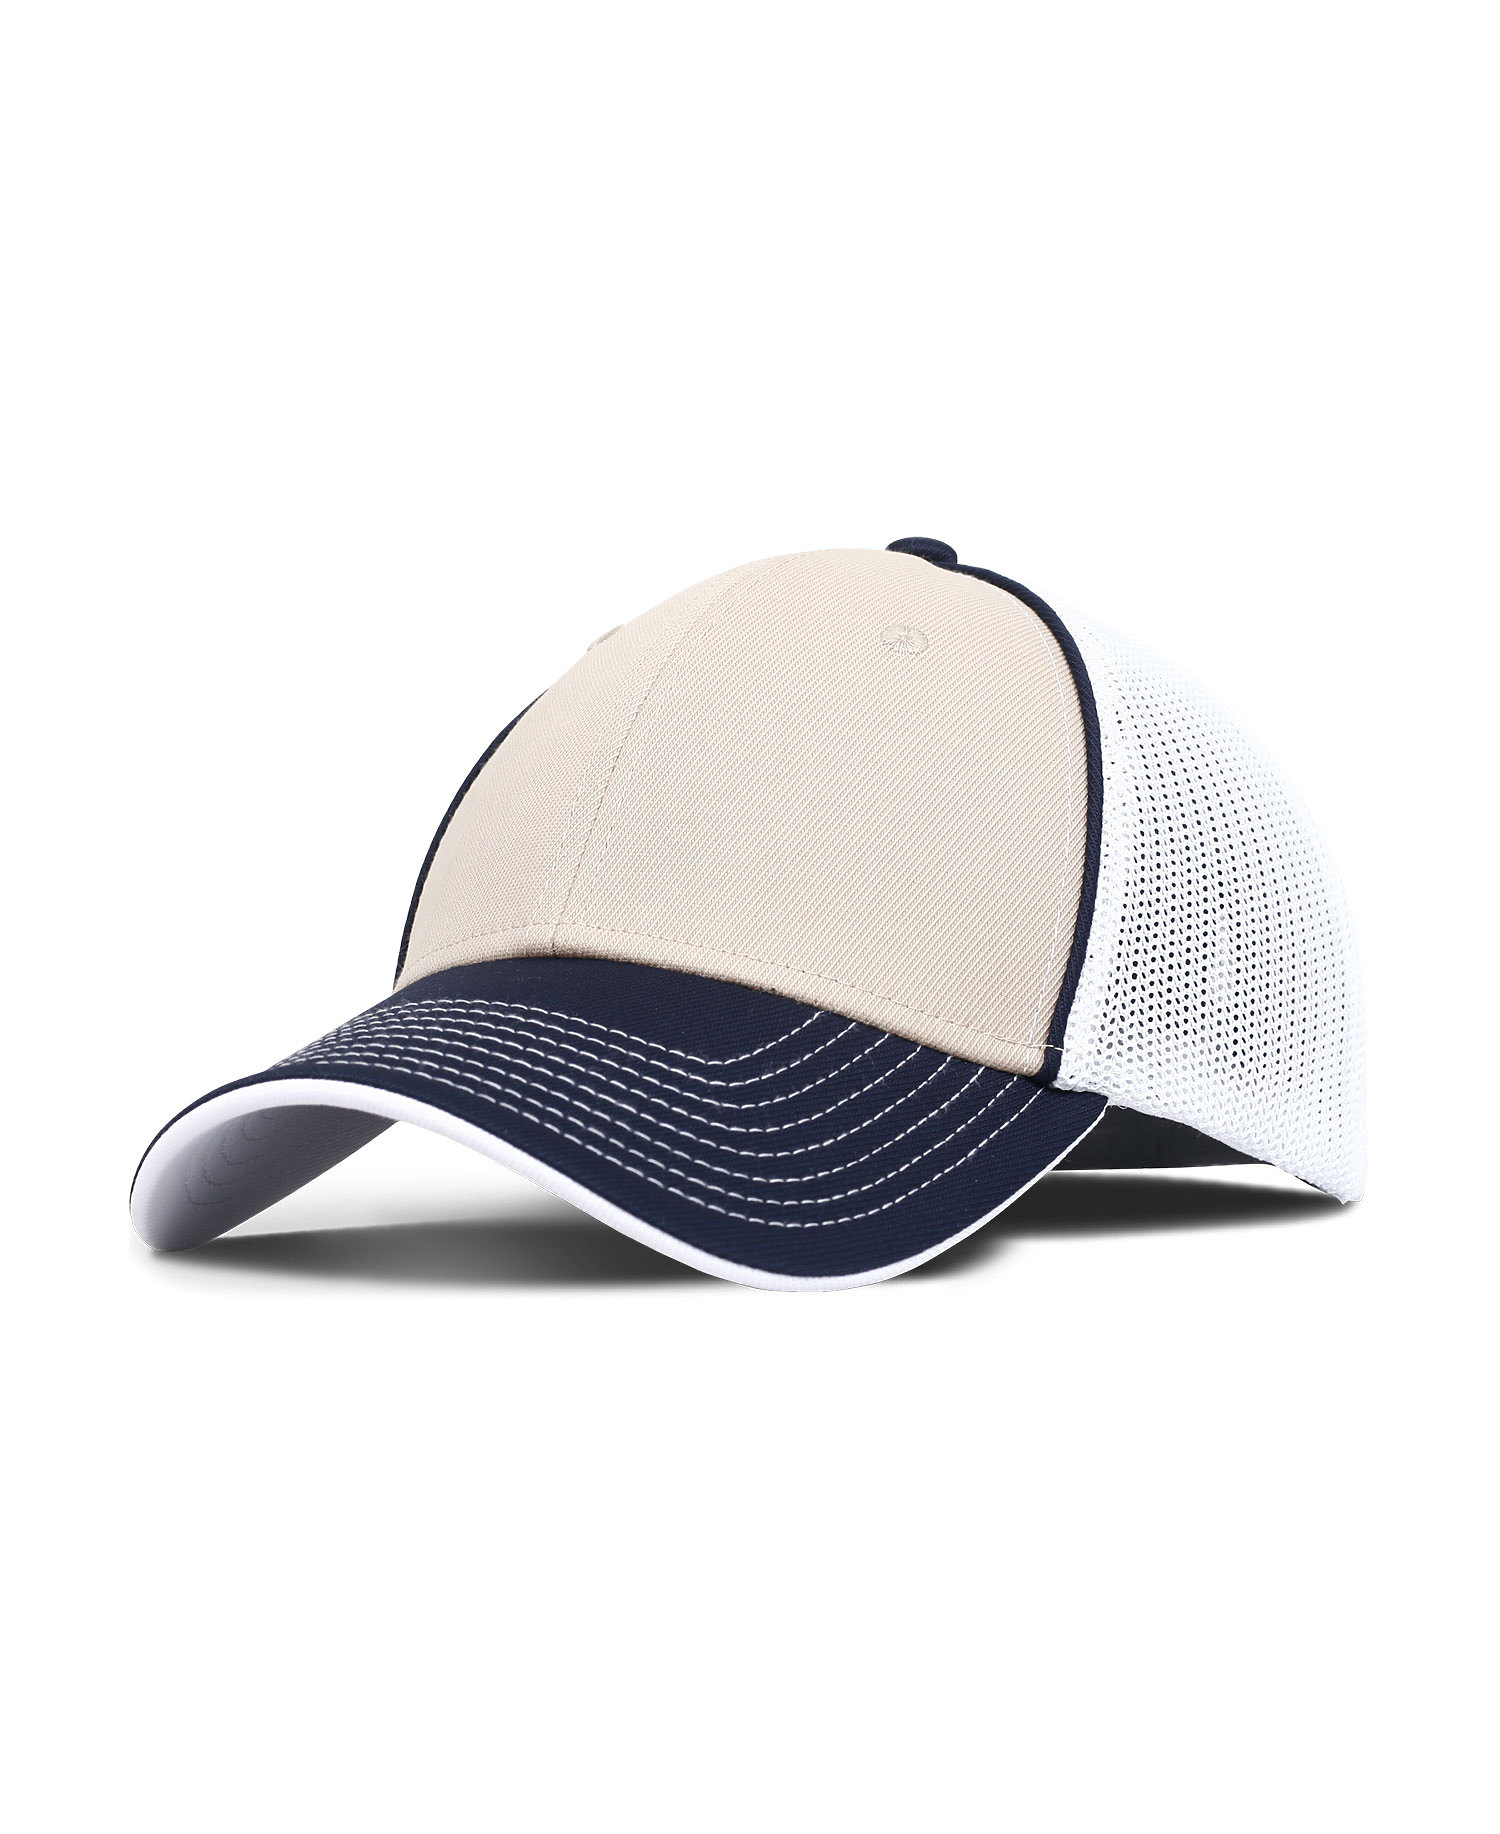 Fahrenheit F0510 - Athletic Styling Stretch Mesh Cap